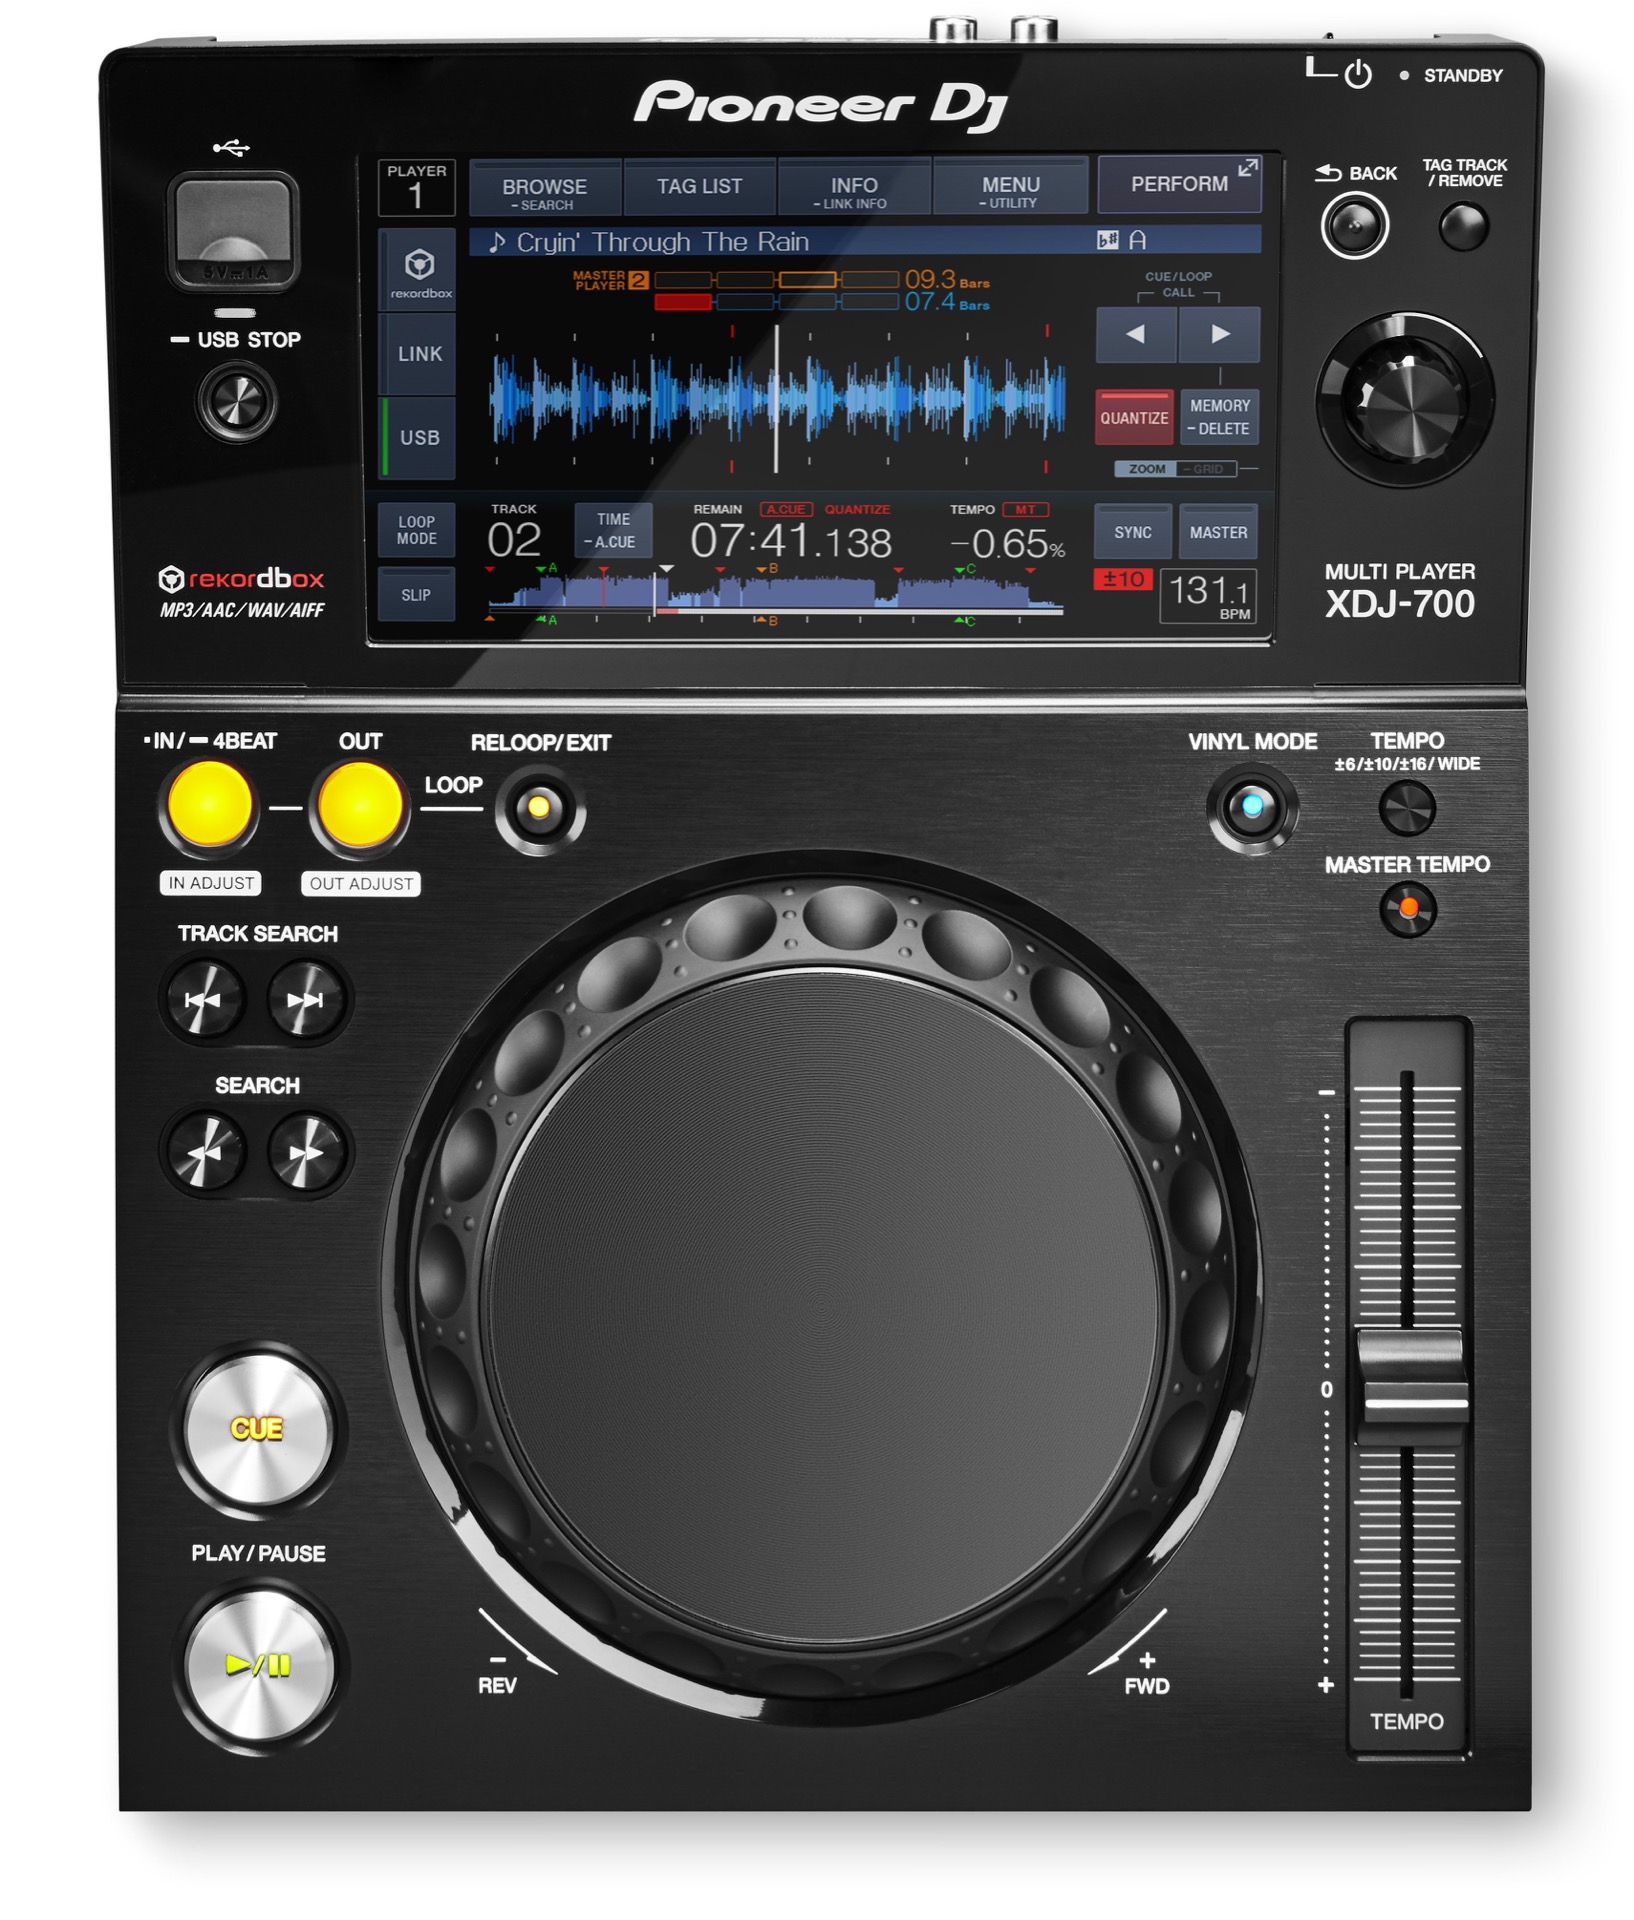 Pioneer XDJ-700 is the $699 touchscreen CDJ to take home